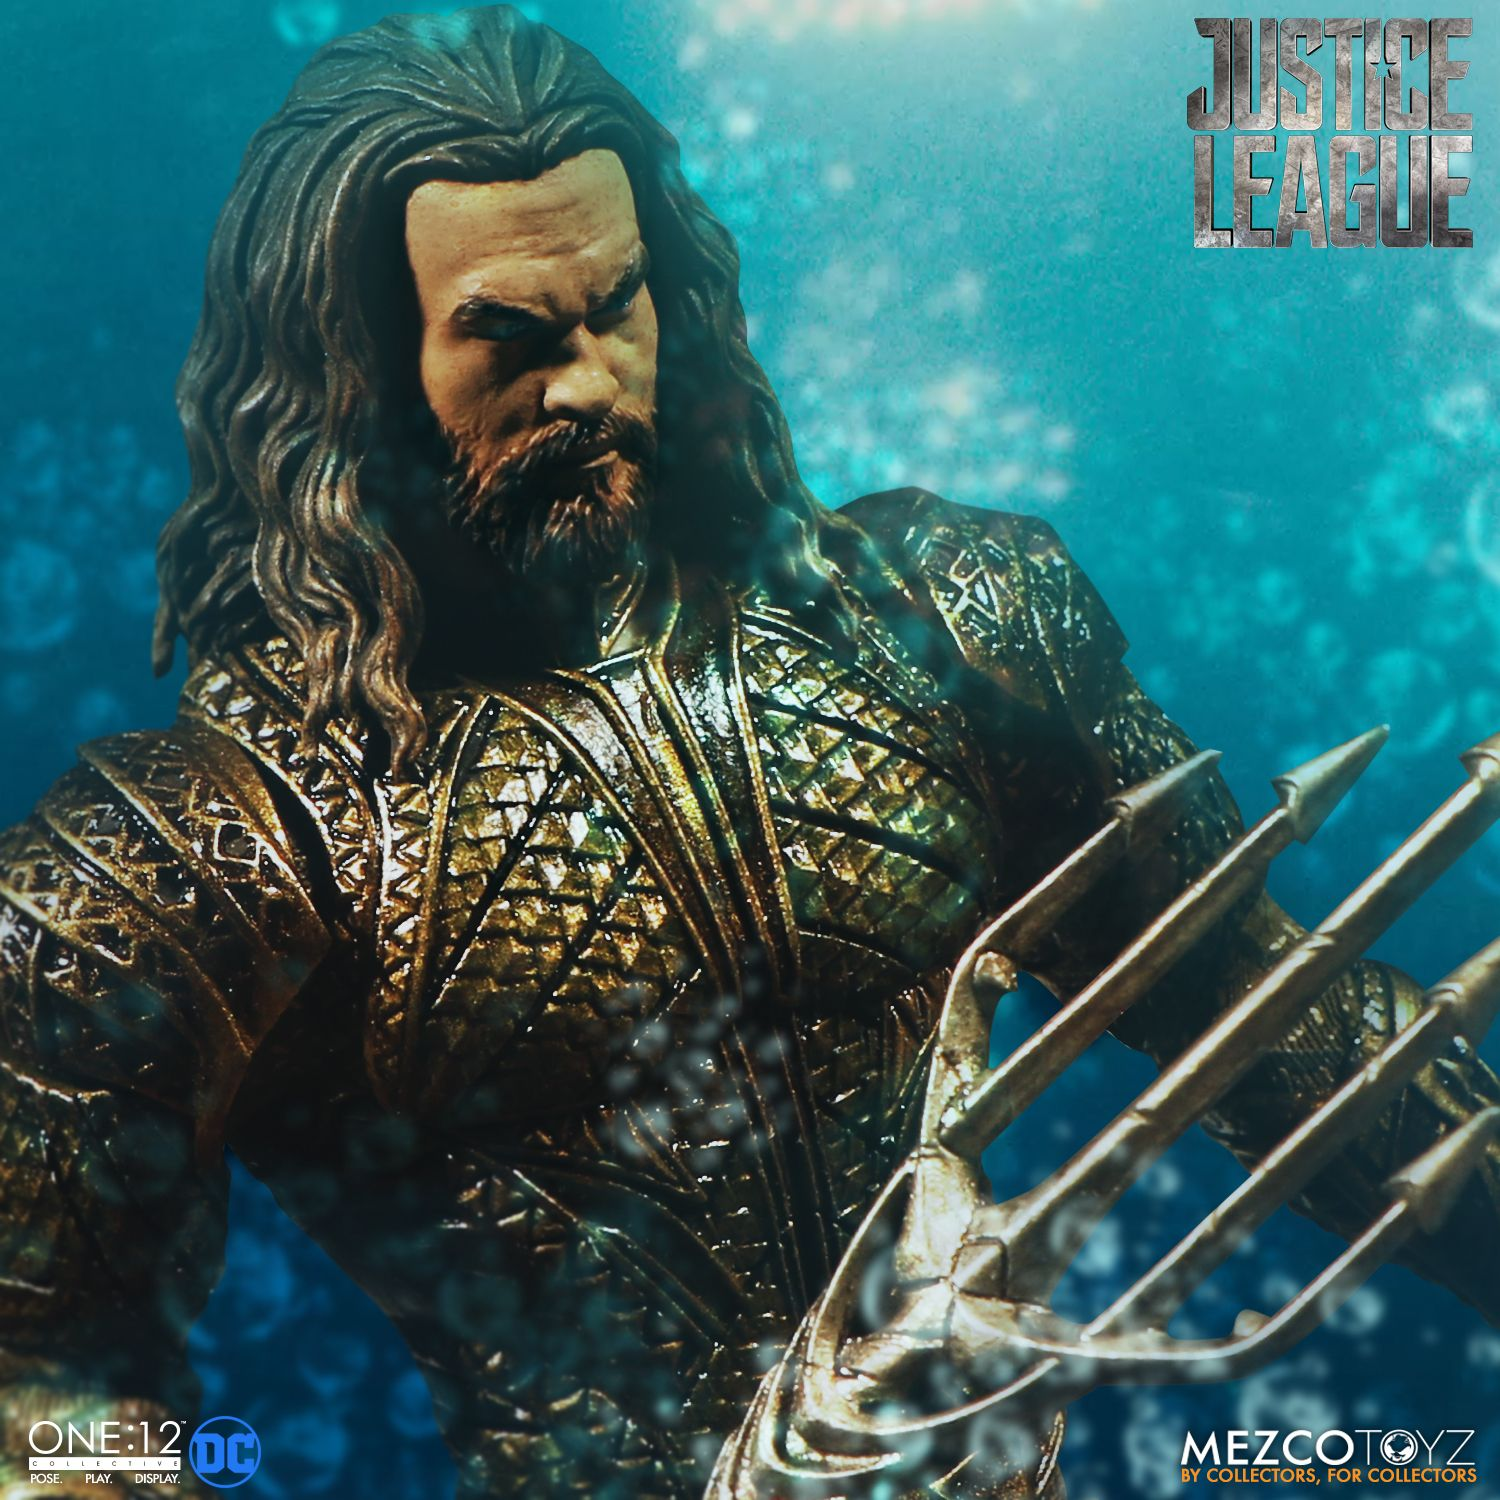 Mezco-JL-One12-Aquaman-Figure-006